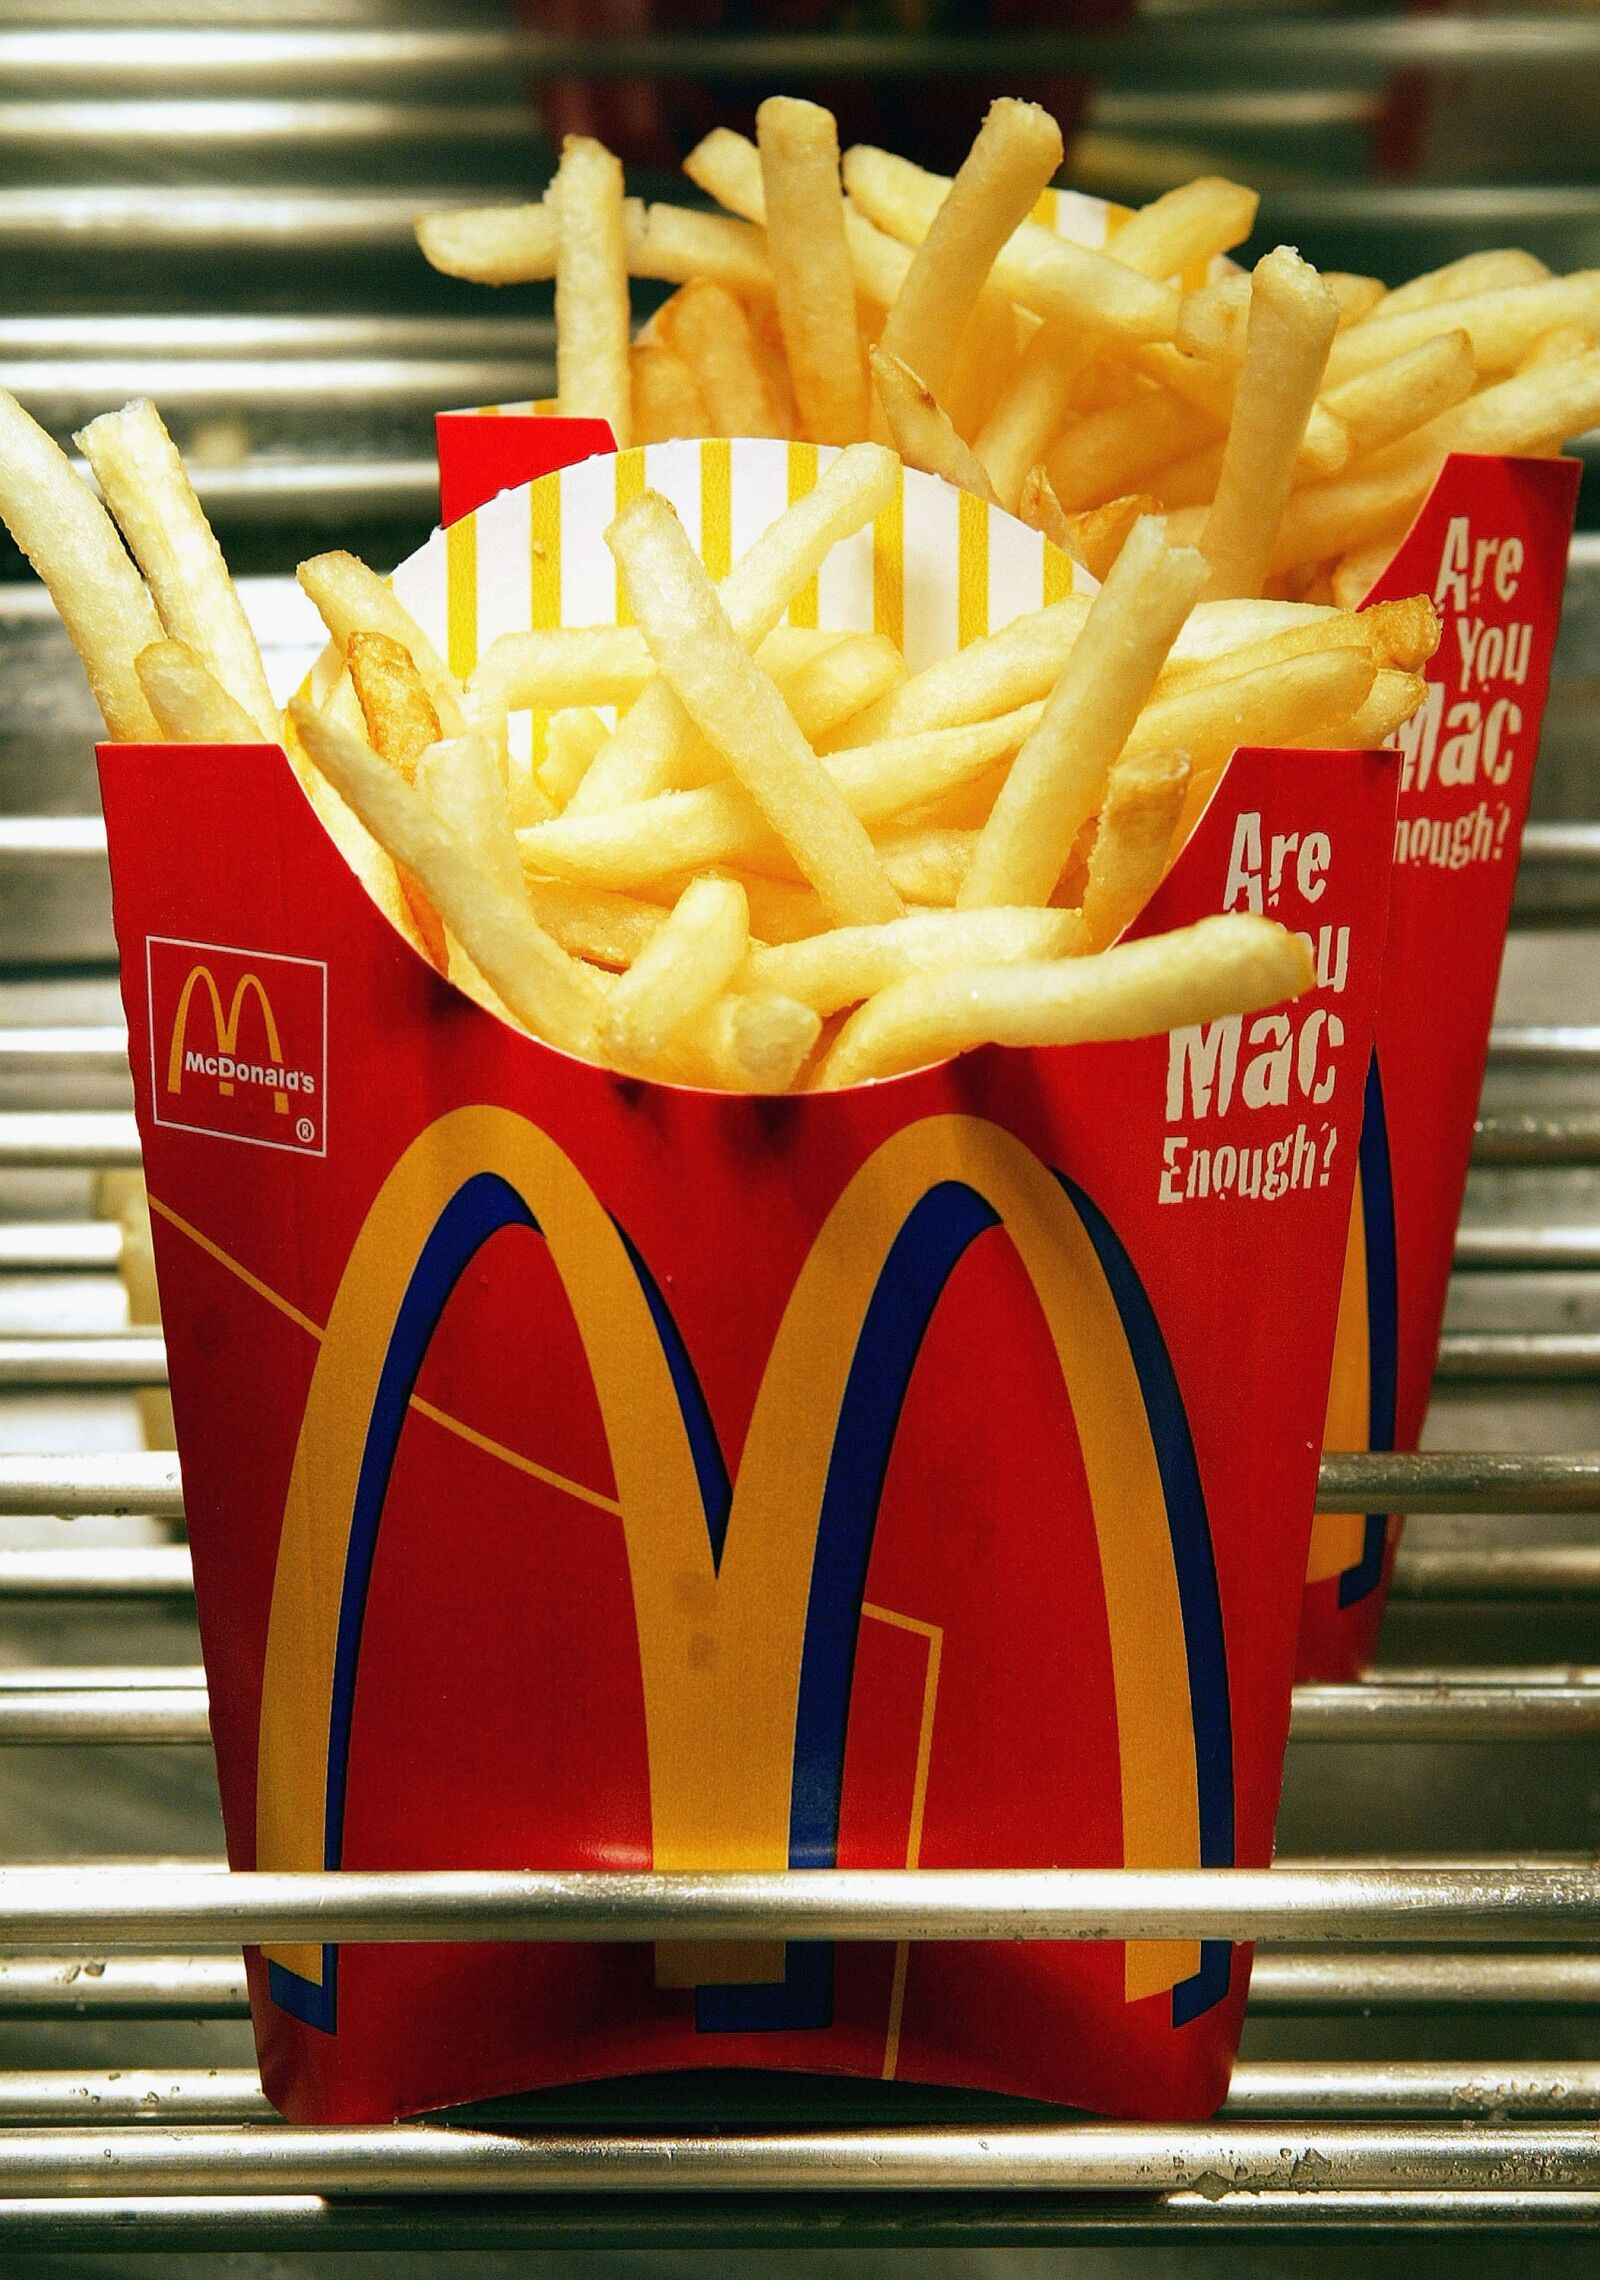 Ever wanted to know how to make McDonald's fries at home?